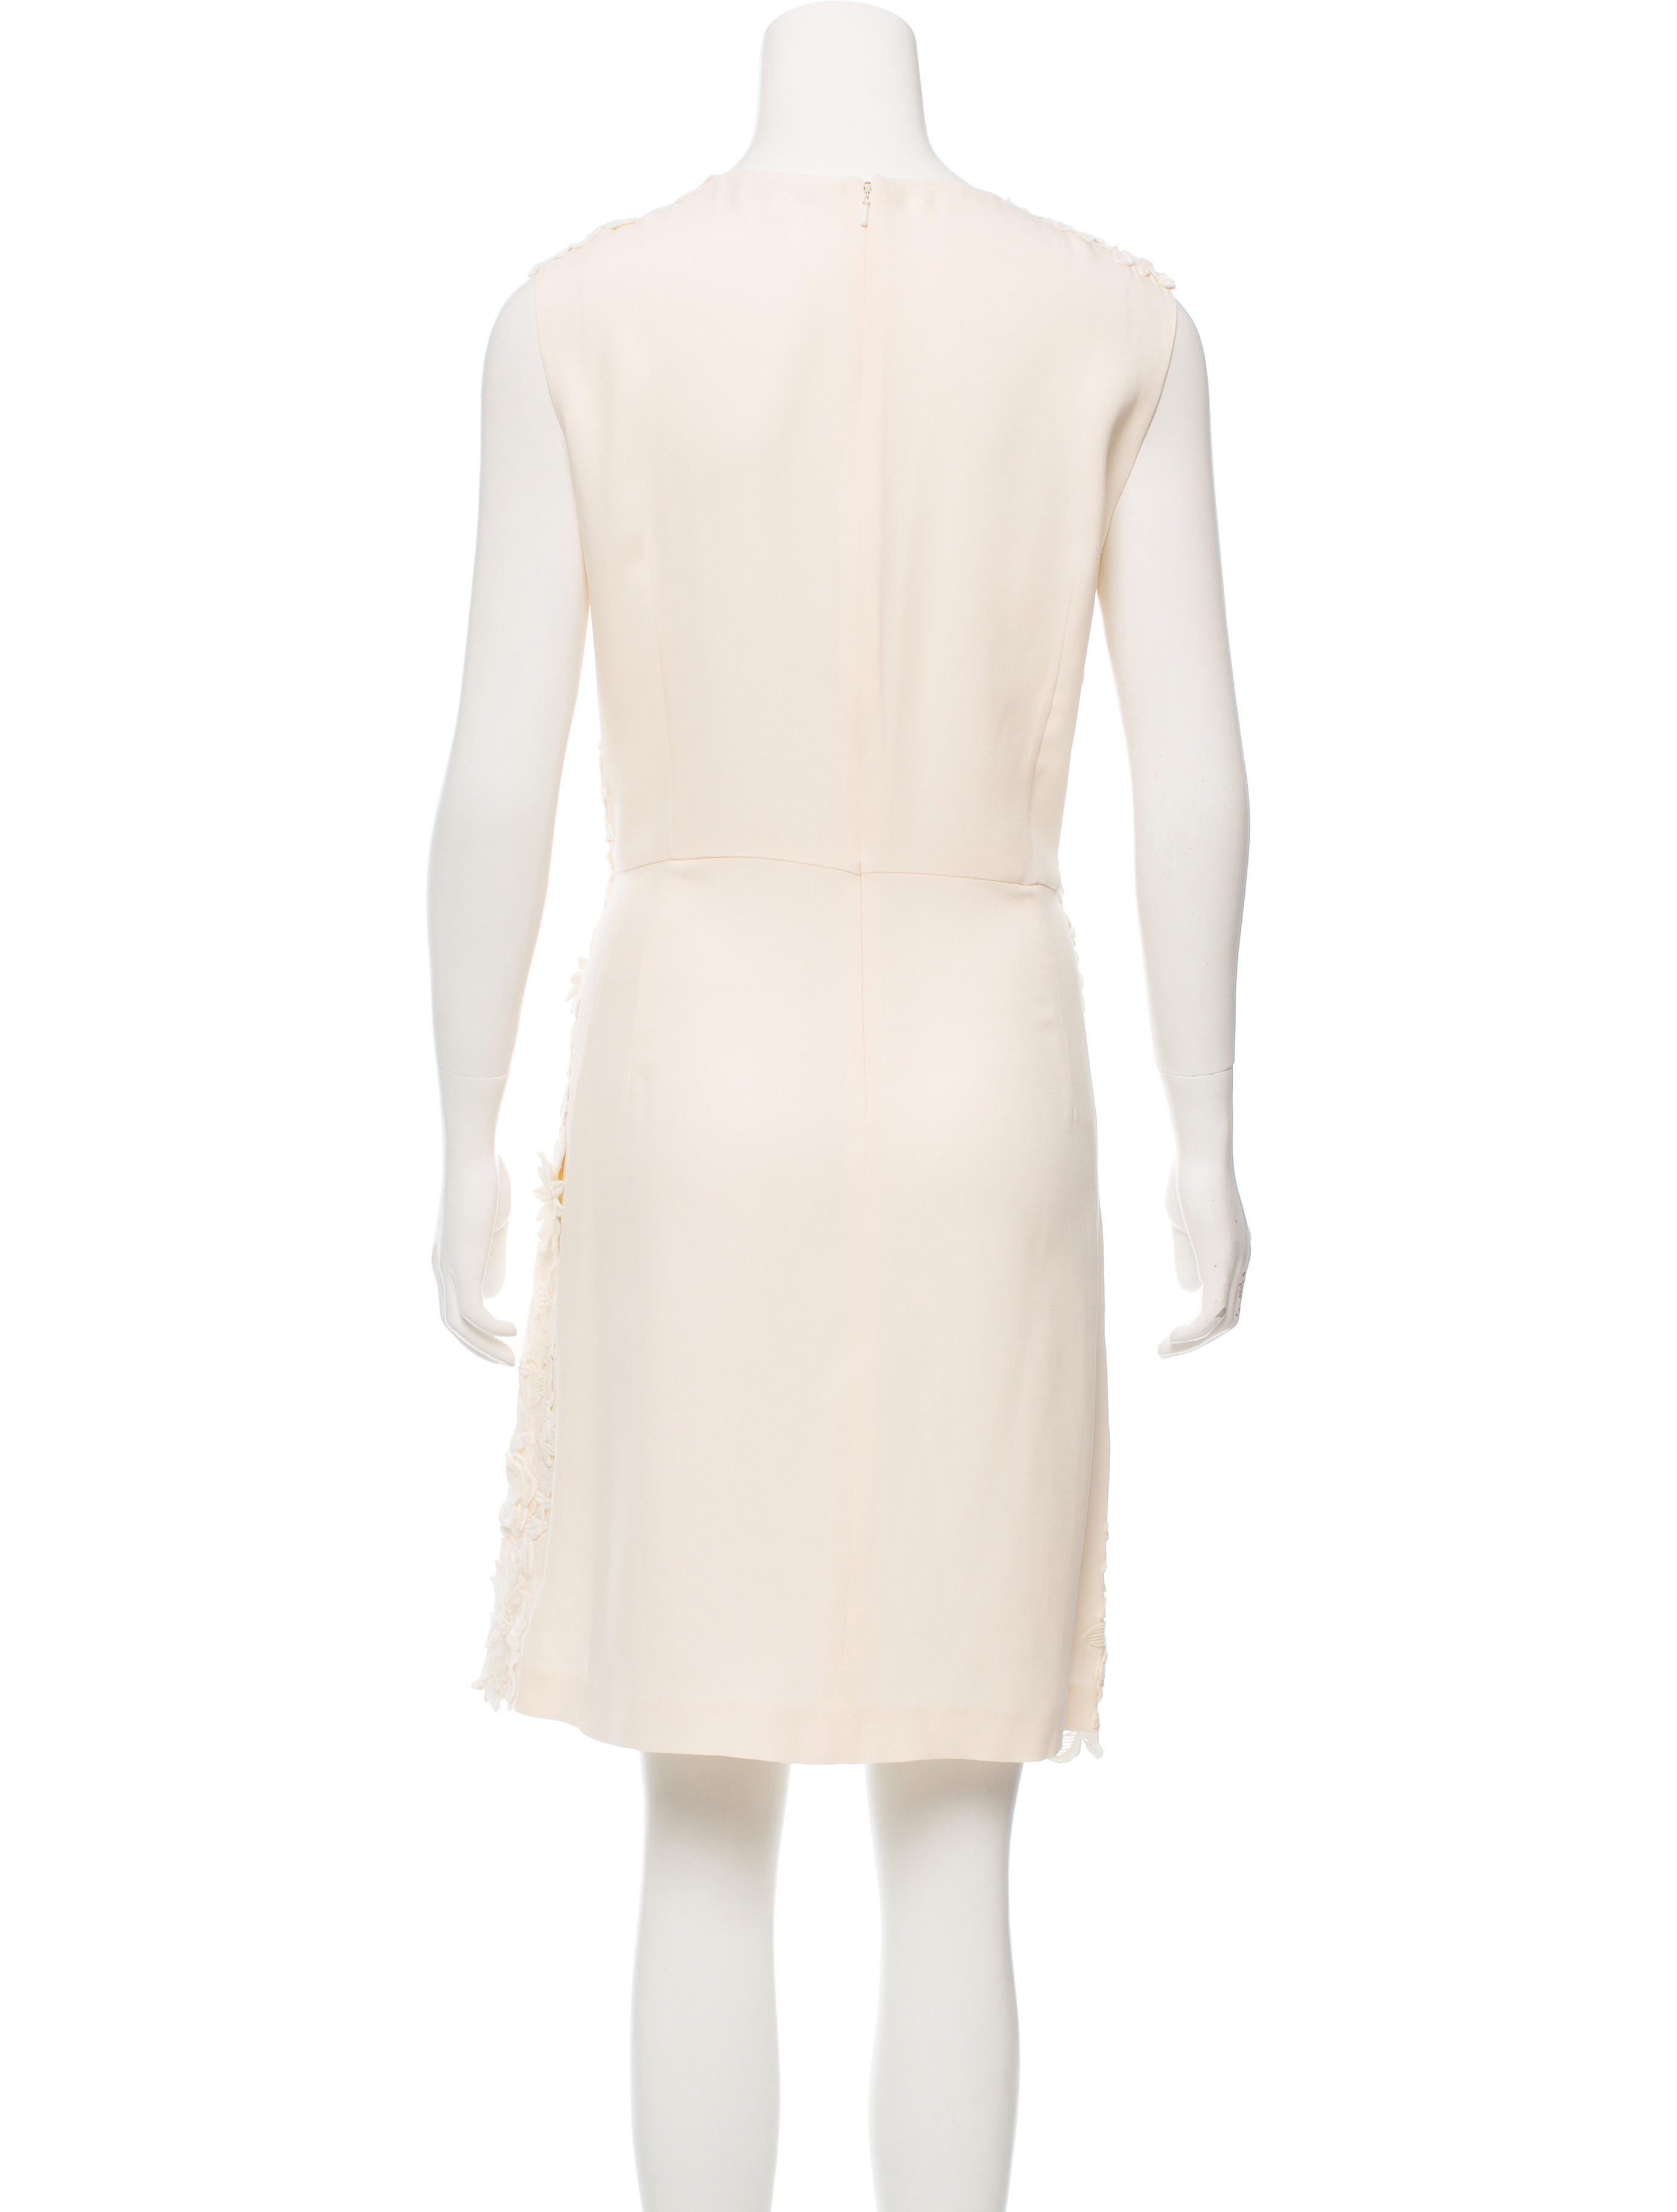 Tory burch floral lace embroidered dress clothing